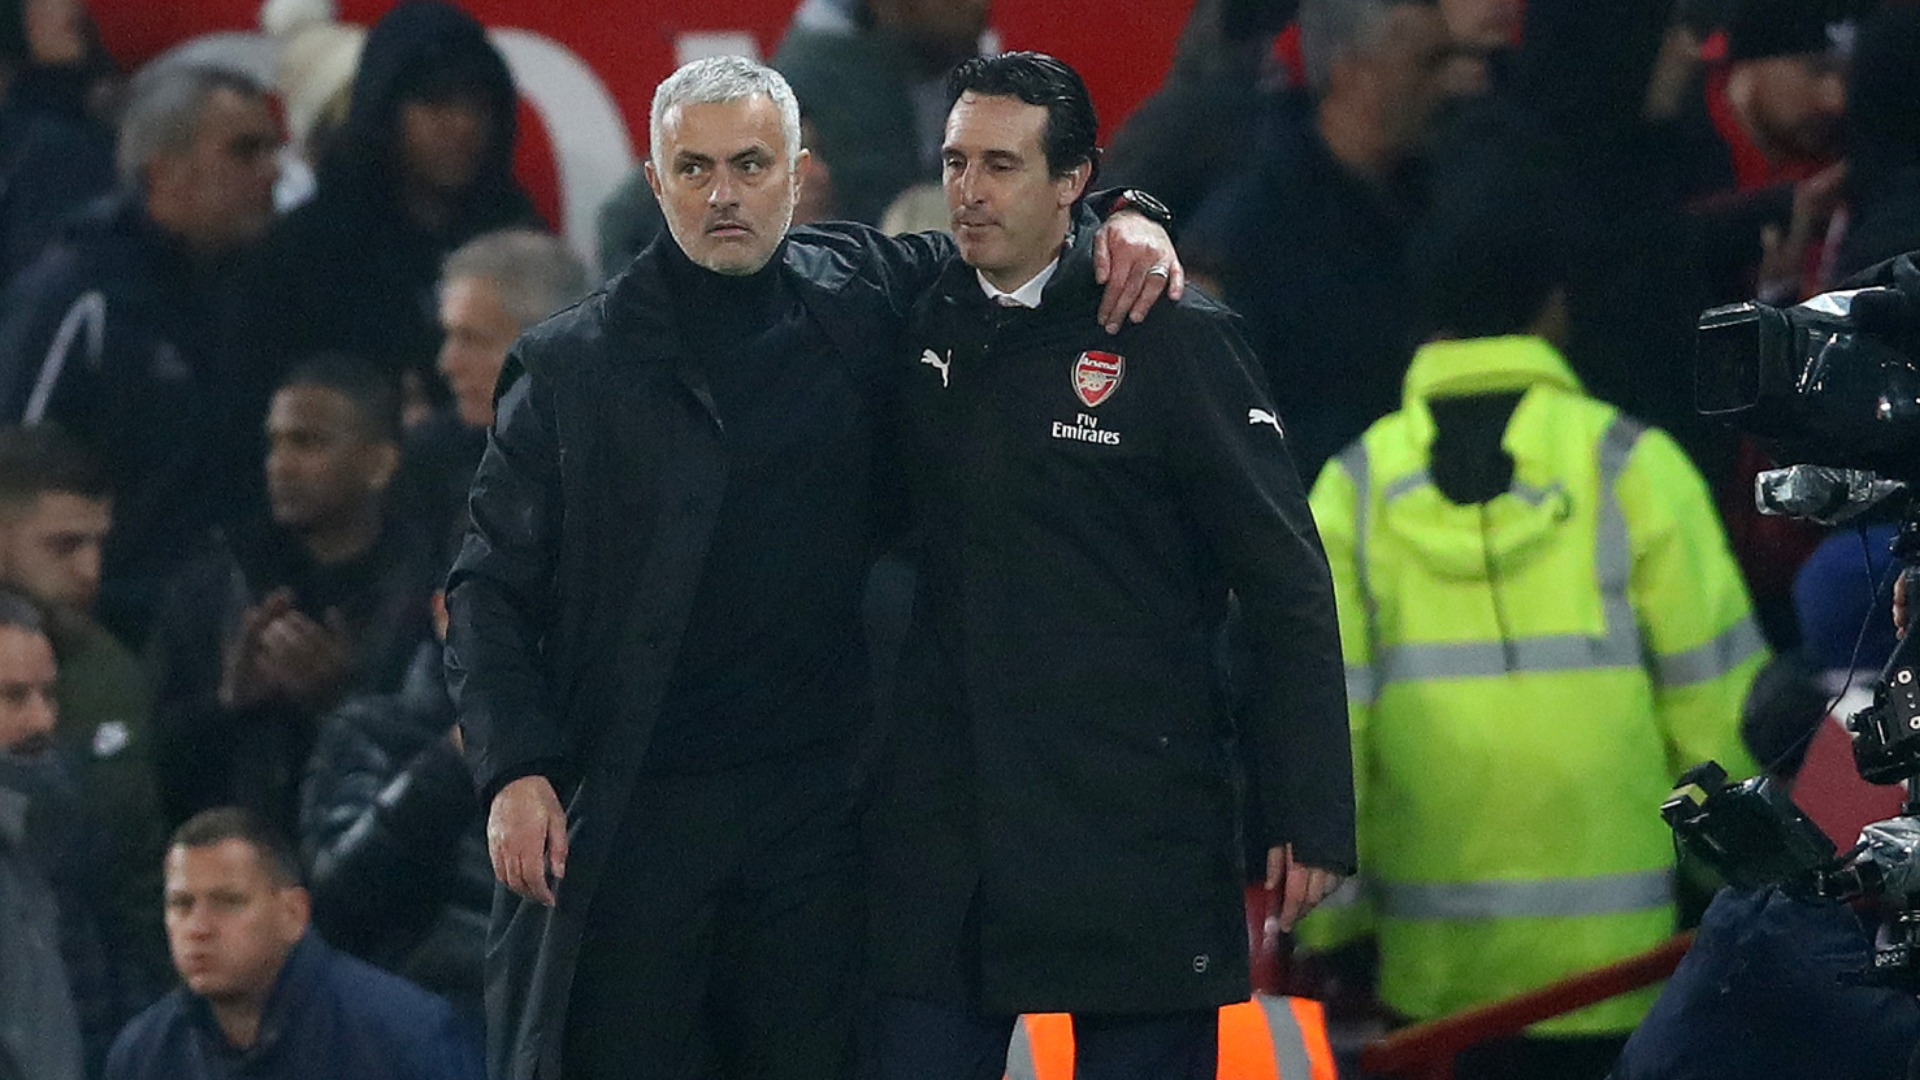 Arsenal sack Emery: Mourinho 'so happy' at Spurs despite reported Gunners interest